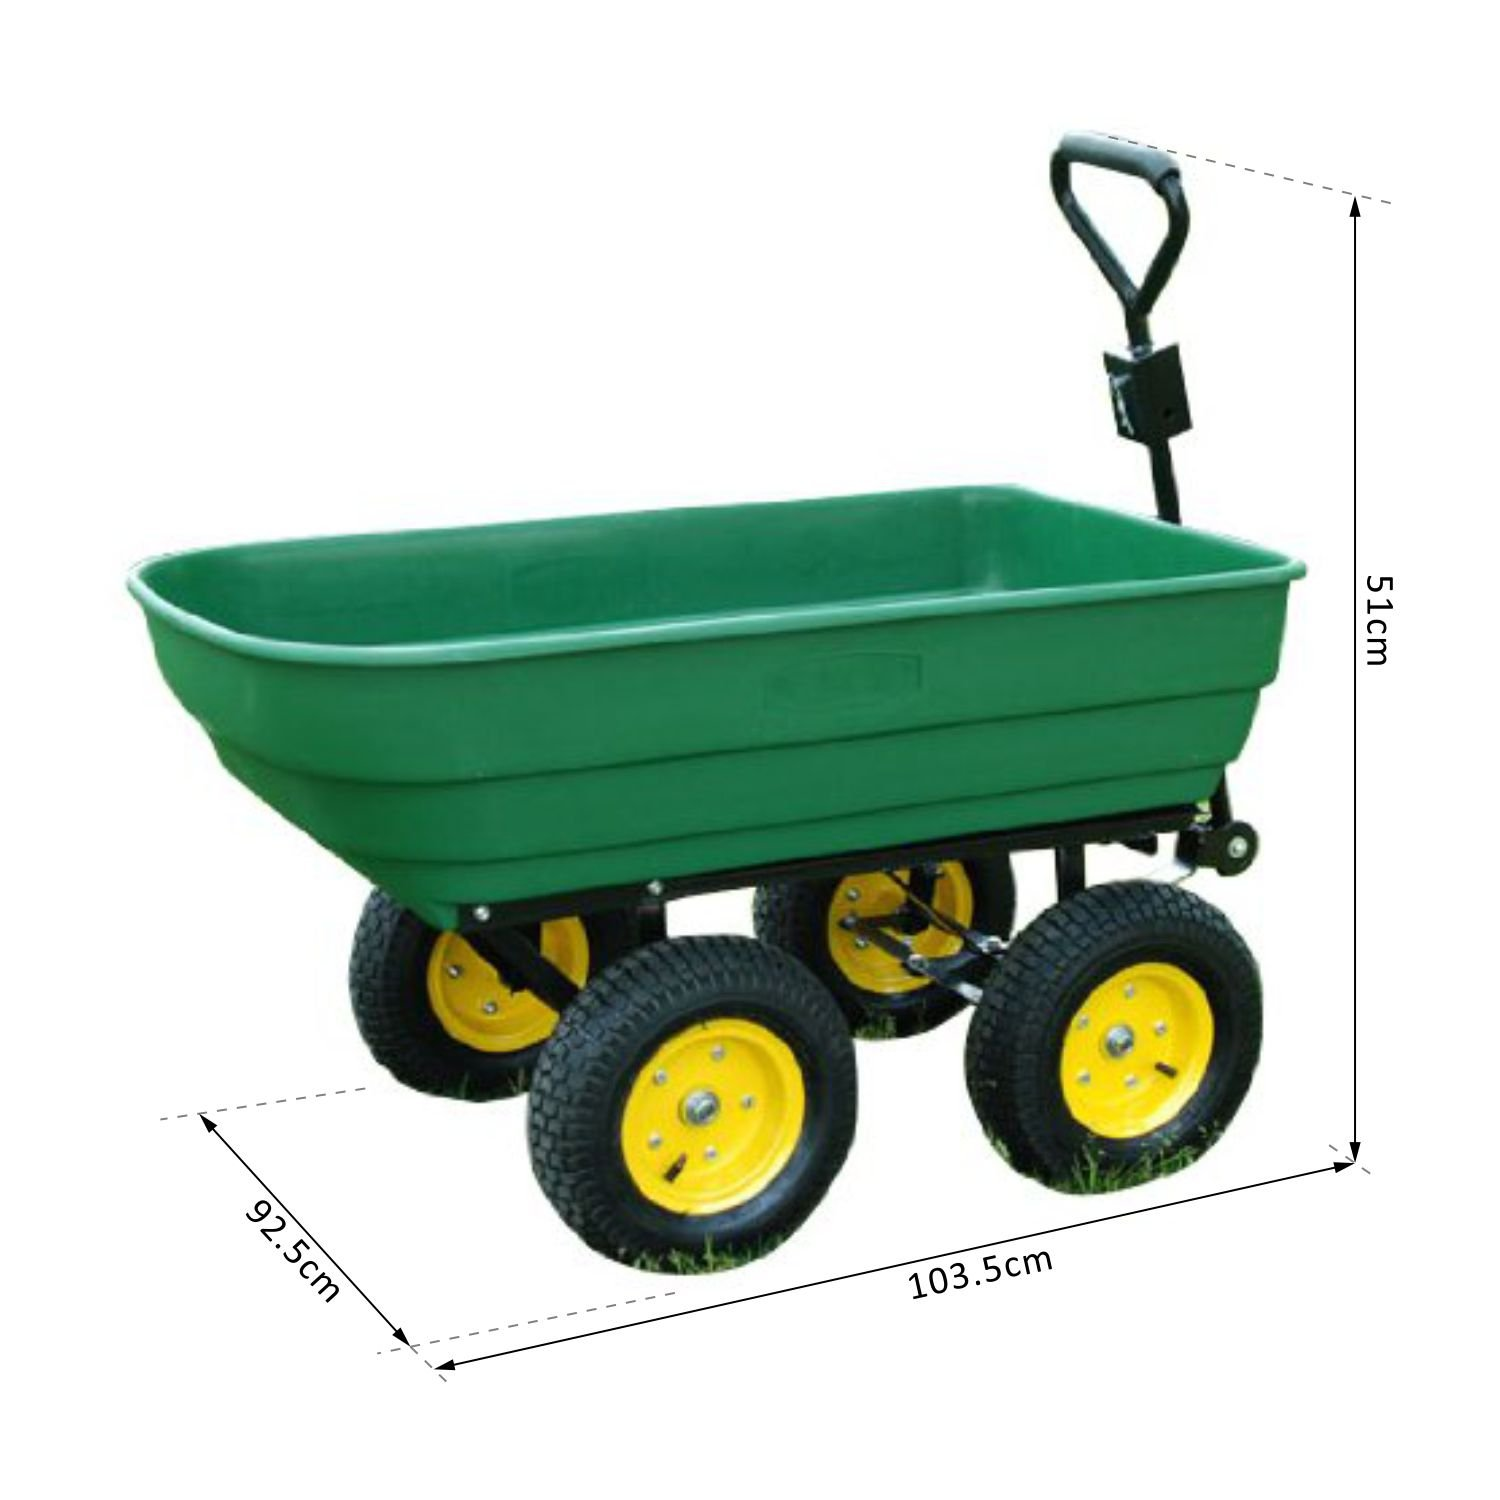 HOMCOM 125 Litre Large Garden Cart Heavy Duty 4 Wheel Trolley Dump Wheelbarrow Tipping Truck Trailer - Green Mhstar 5662-0362